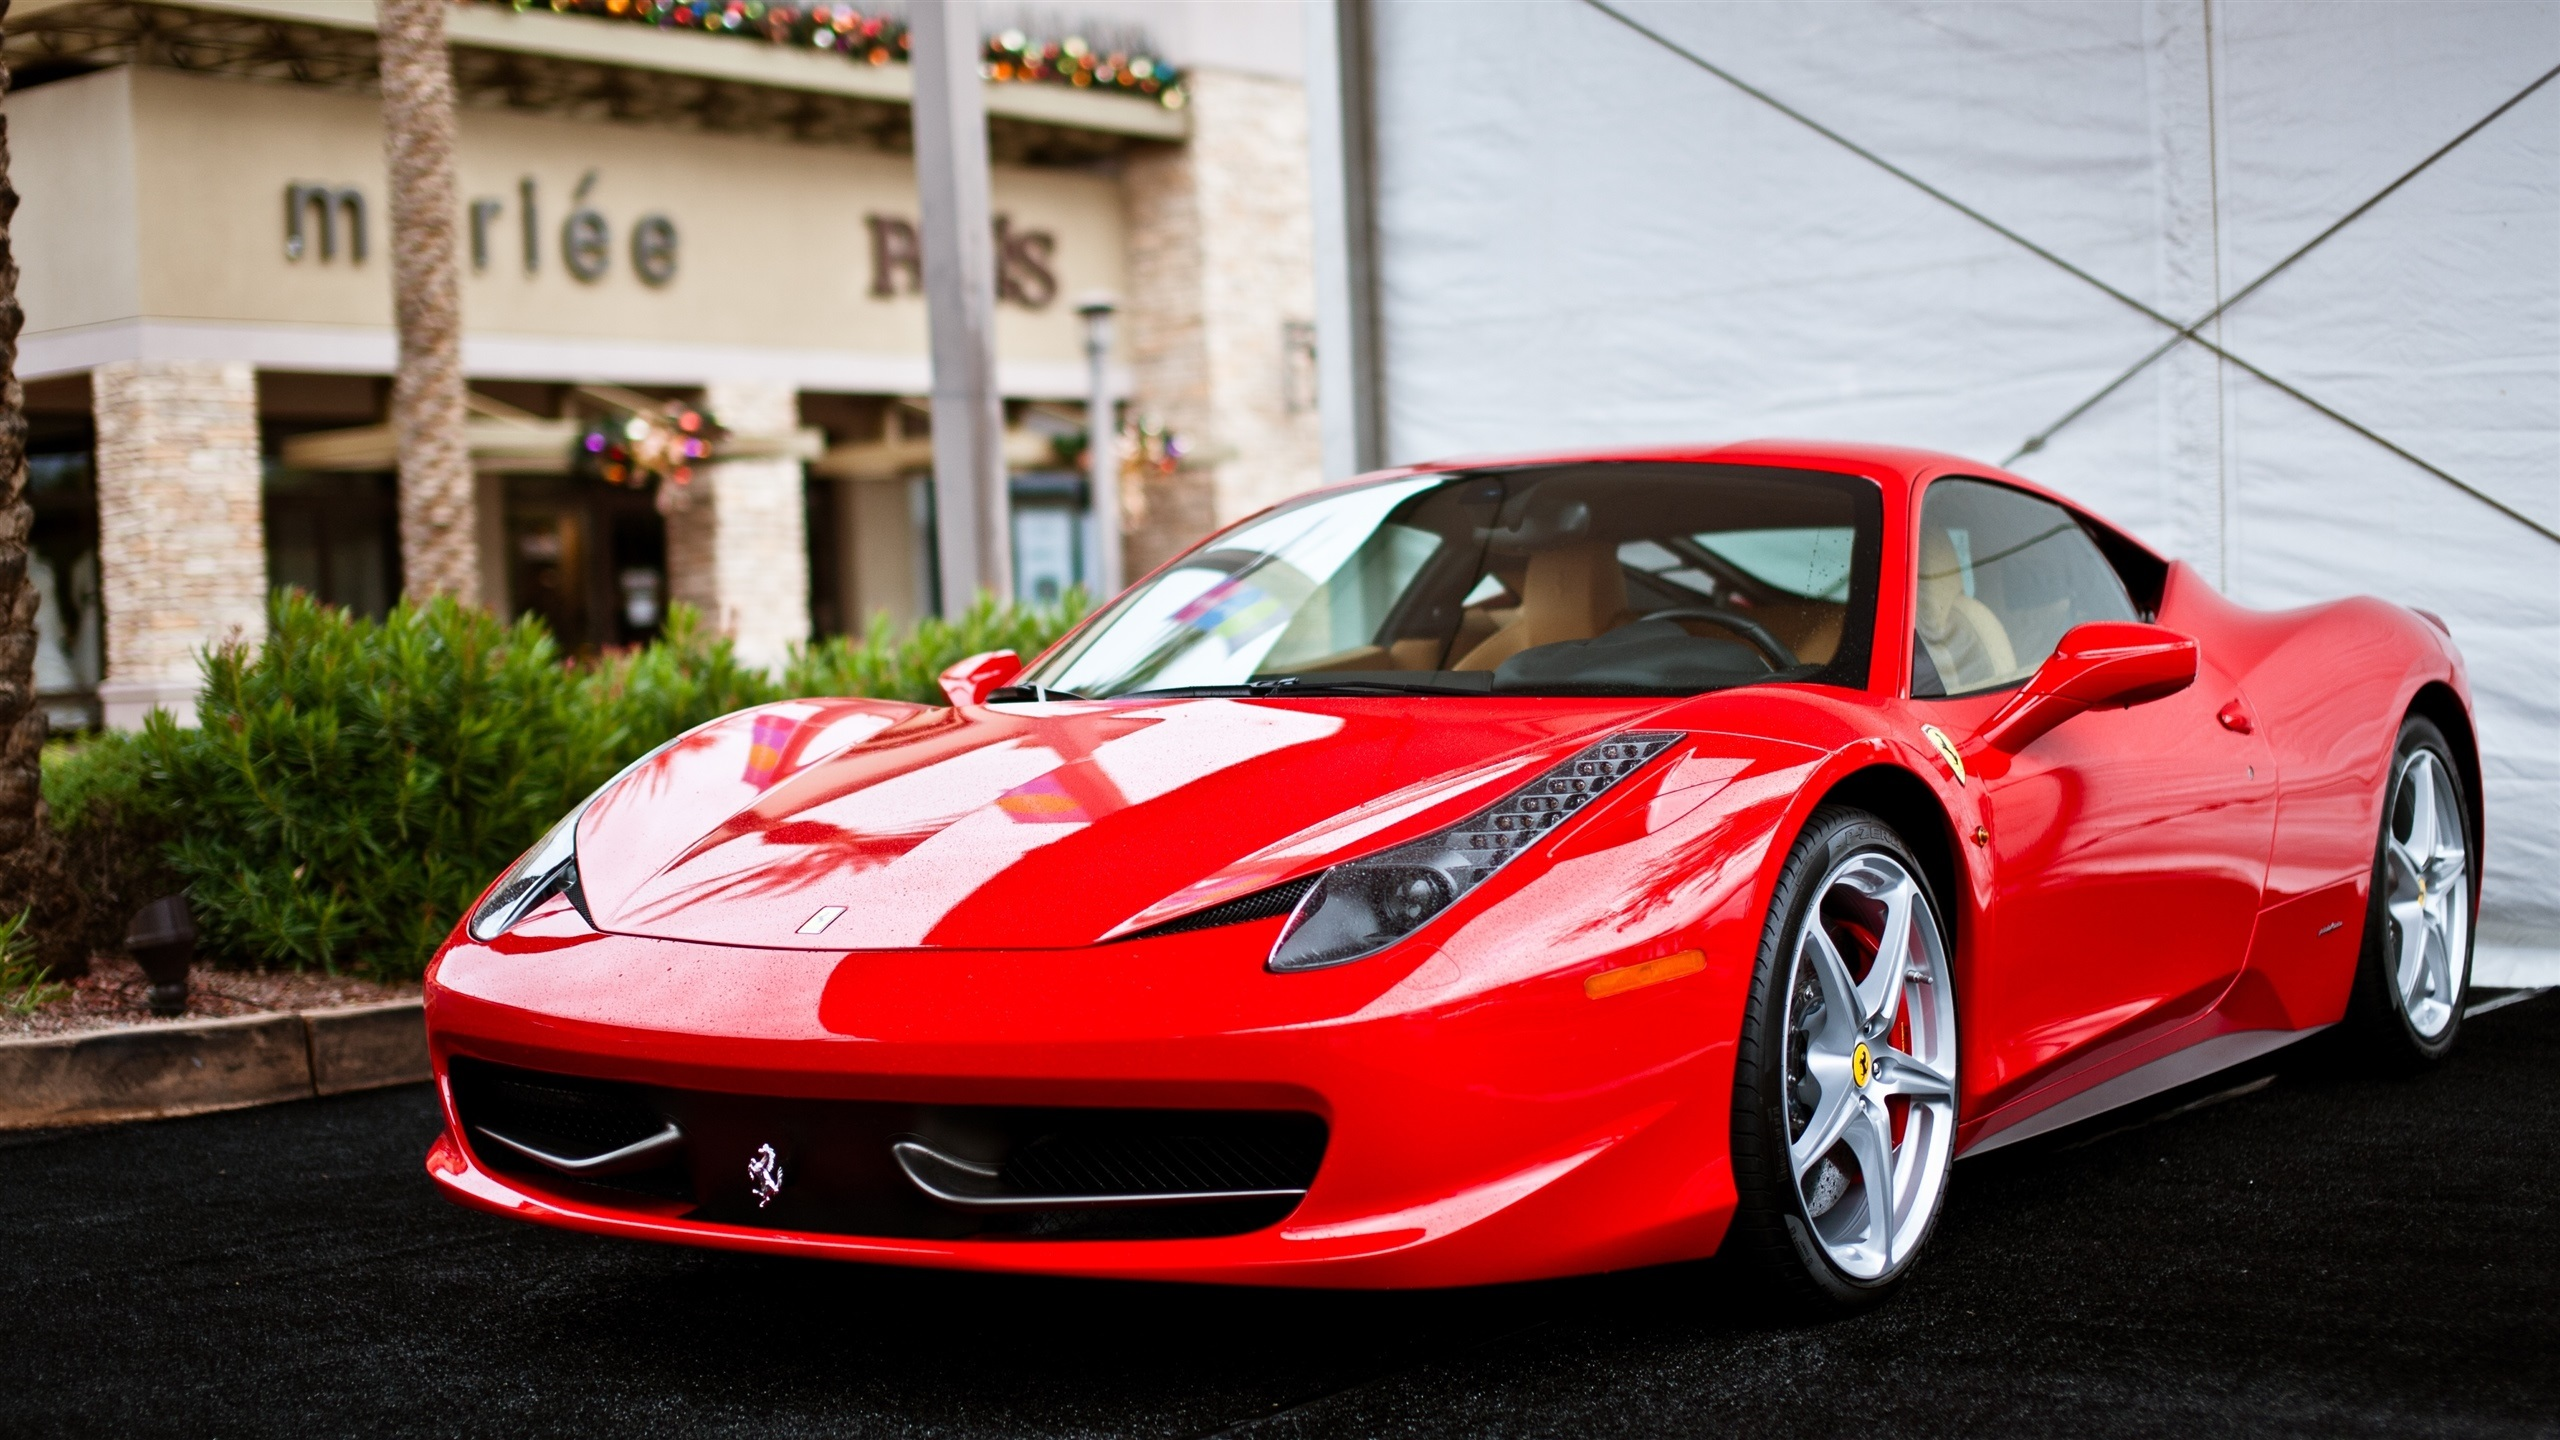 Wallpaper Ferrari 458 Italia Red Supercar Front View 2560x1440 Qhd Picture Image